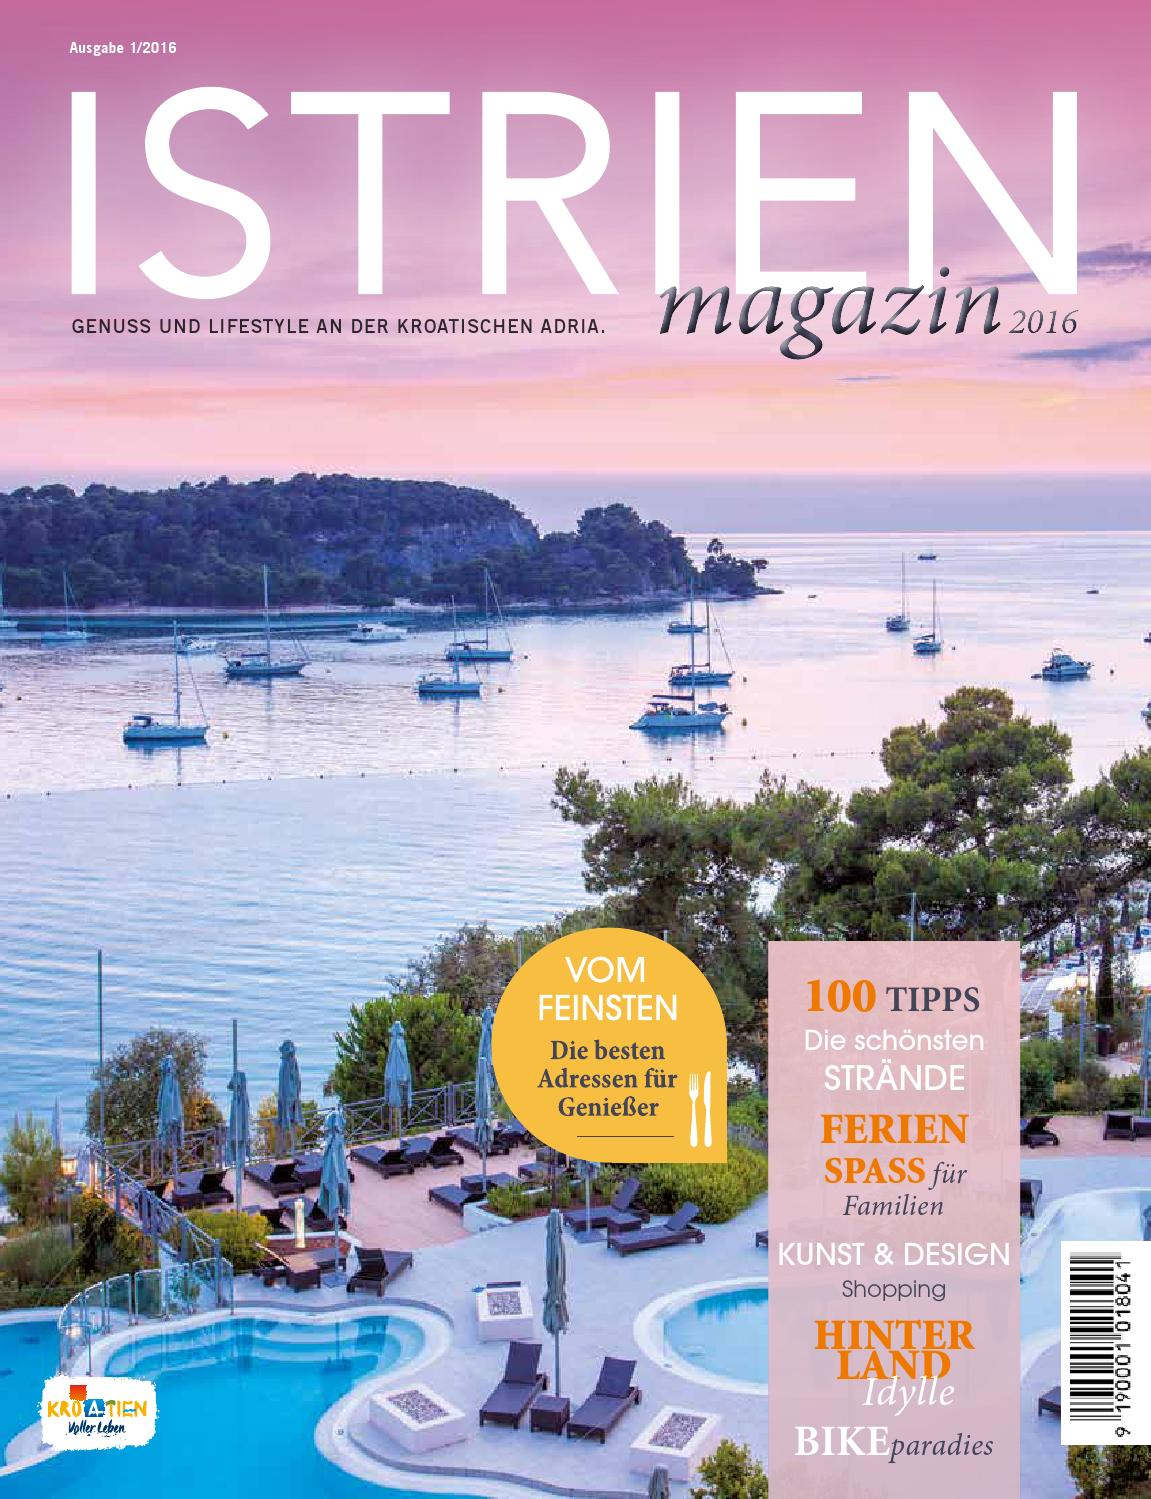 Ferienhaus Istrien Mit Pool Novasol Istrien Magazine 2016 By Bookletia Issuu